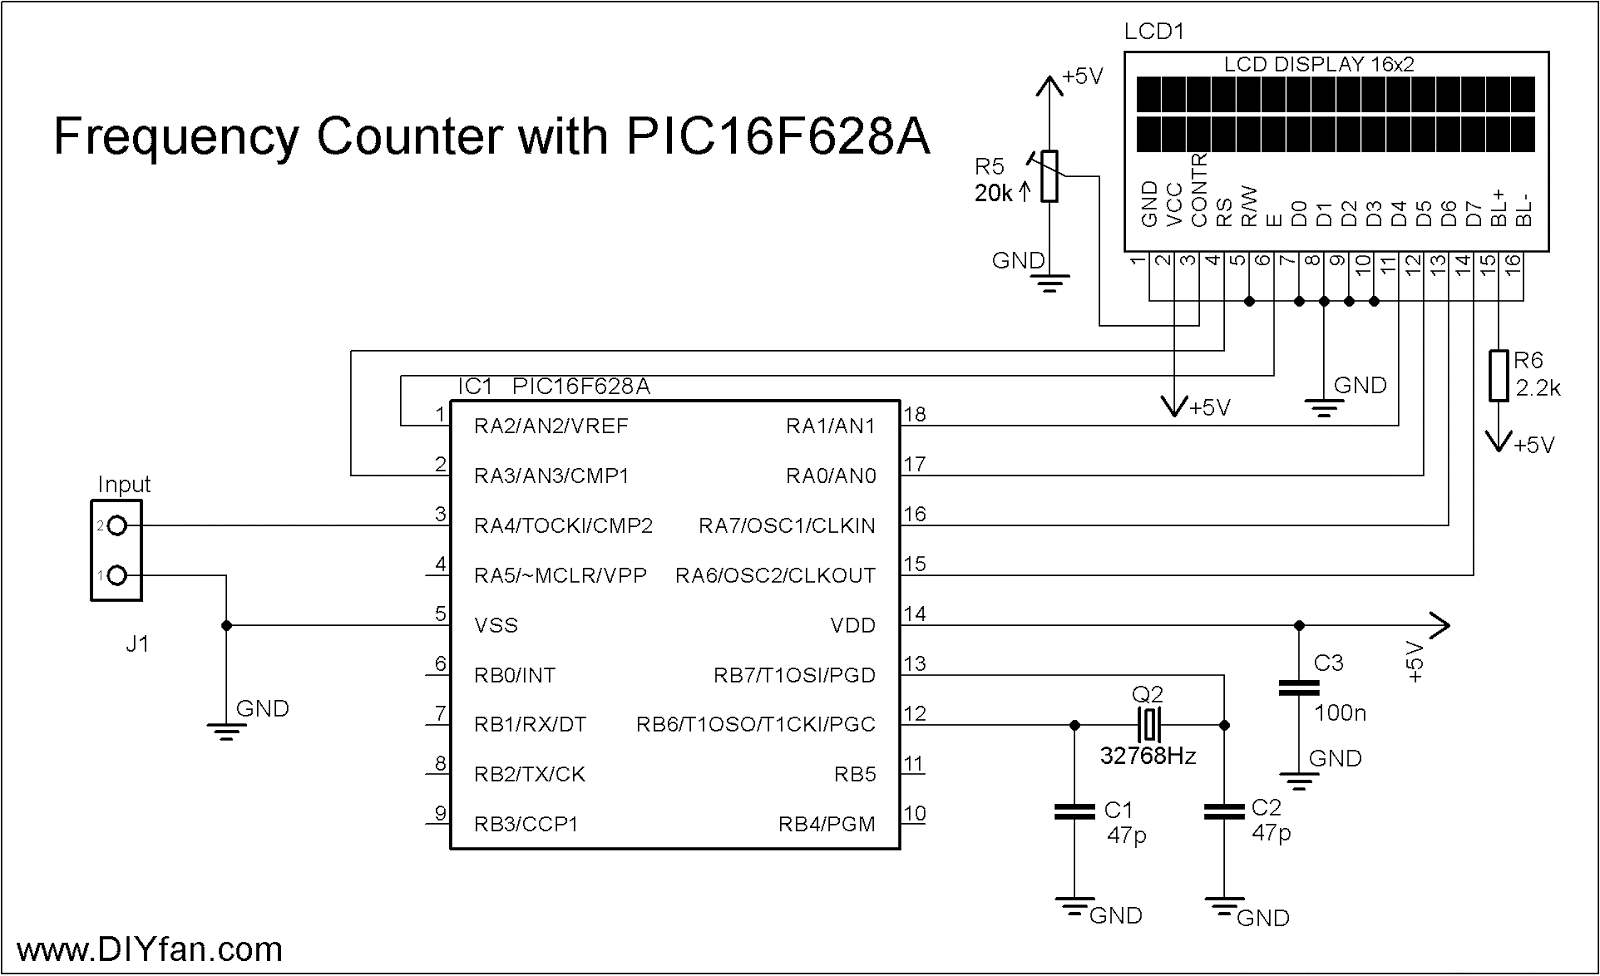 Frequency Counter Preamplifier Circuit : Diyfan mhz frequency counter with lcd display